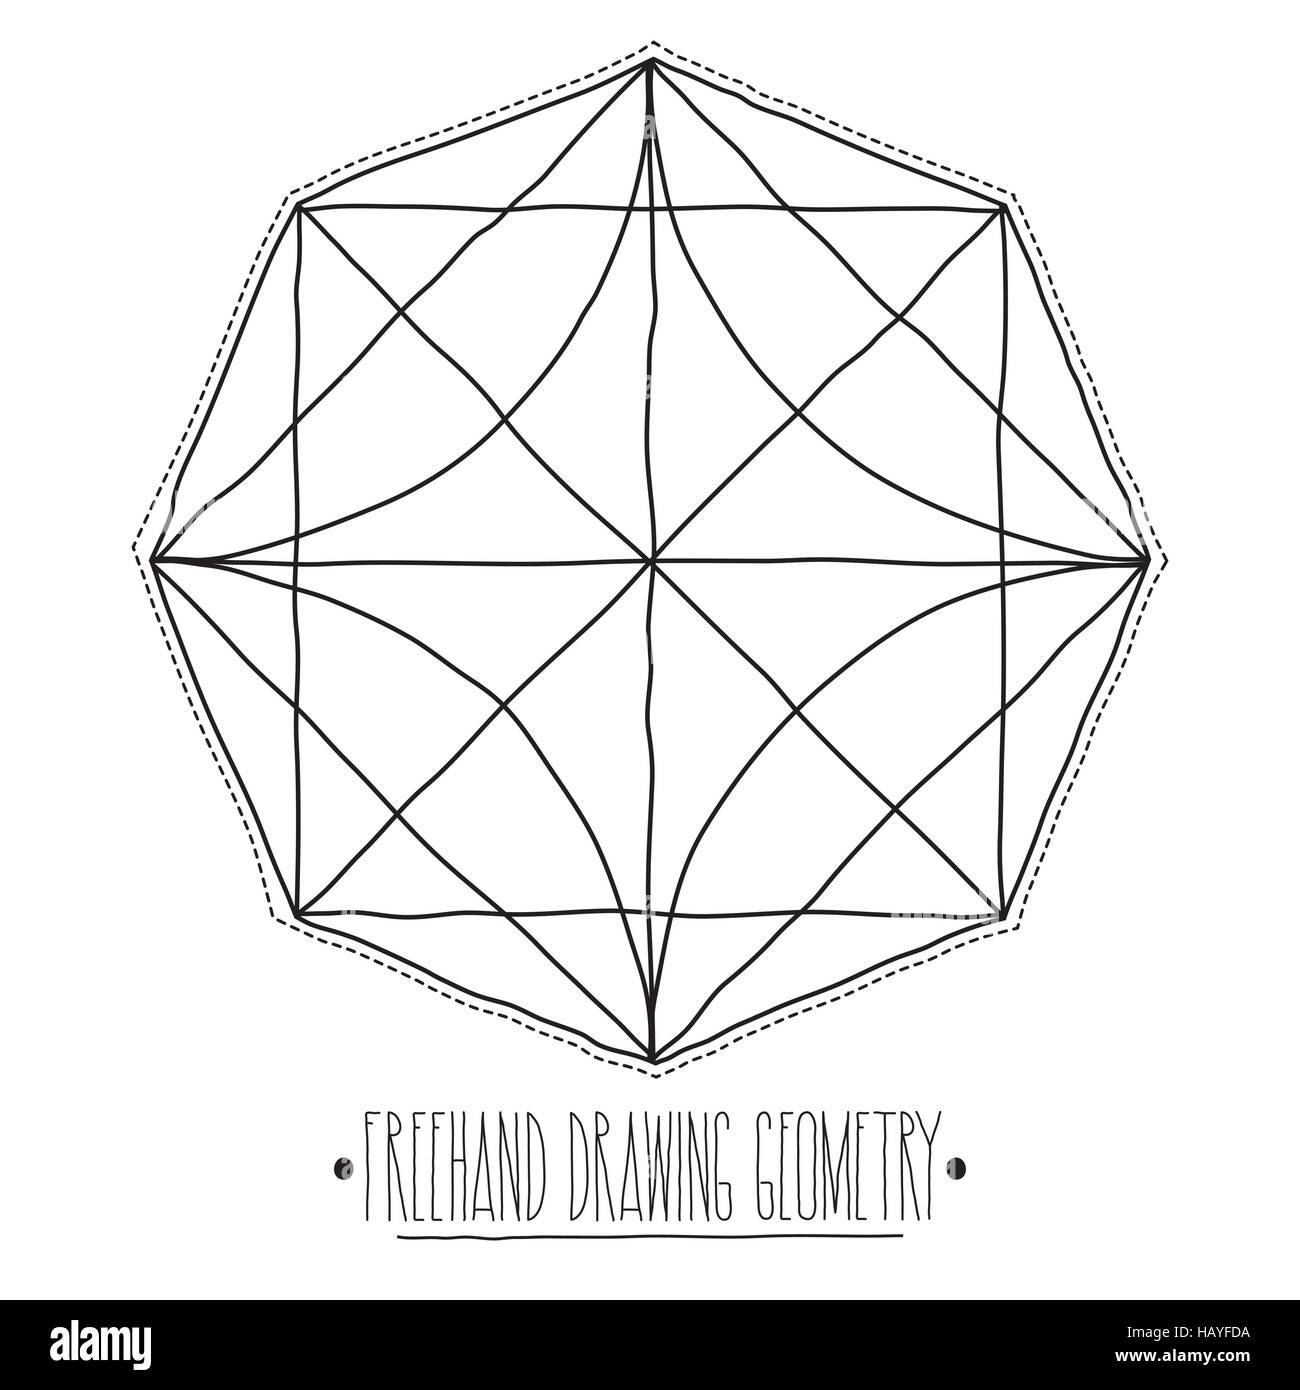 Hollow core geometric figures and elements with lines polyhedron - Stock Image